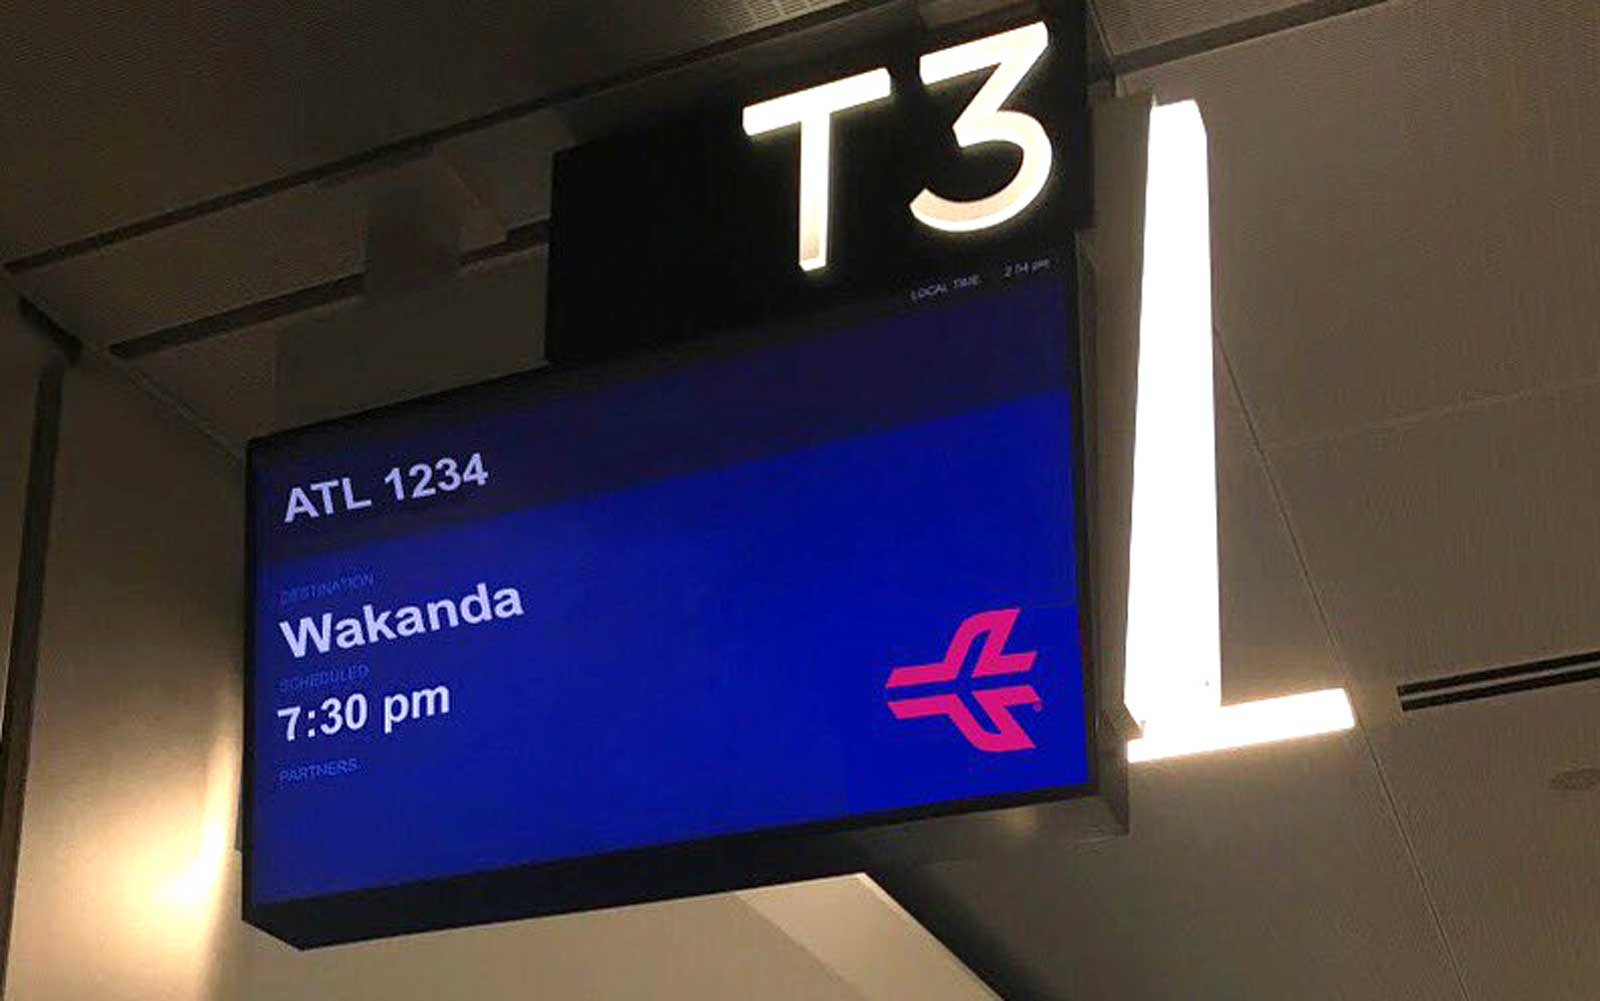 Atlanta Airport Tweet Sign for Flight to Wakanda